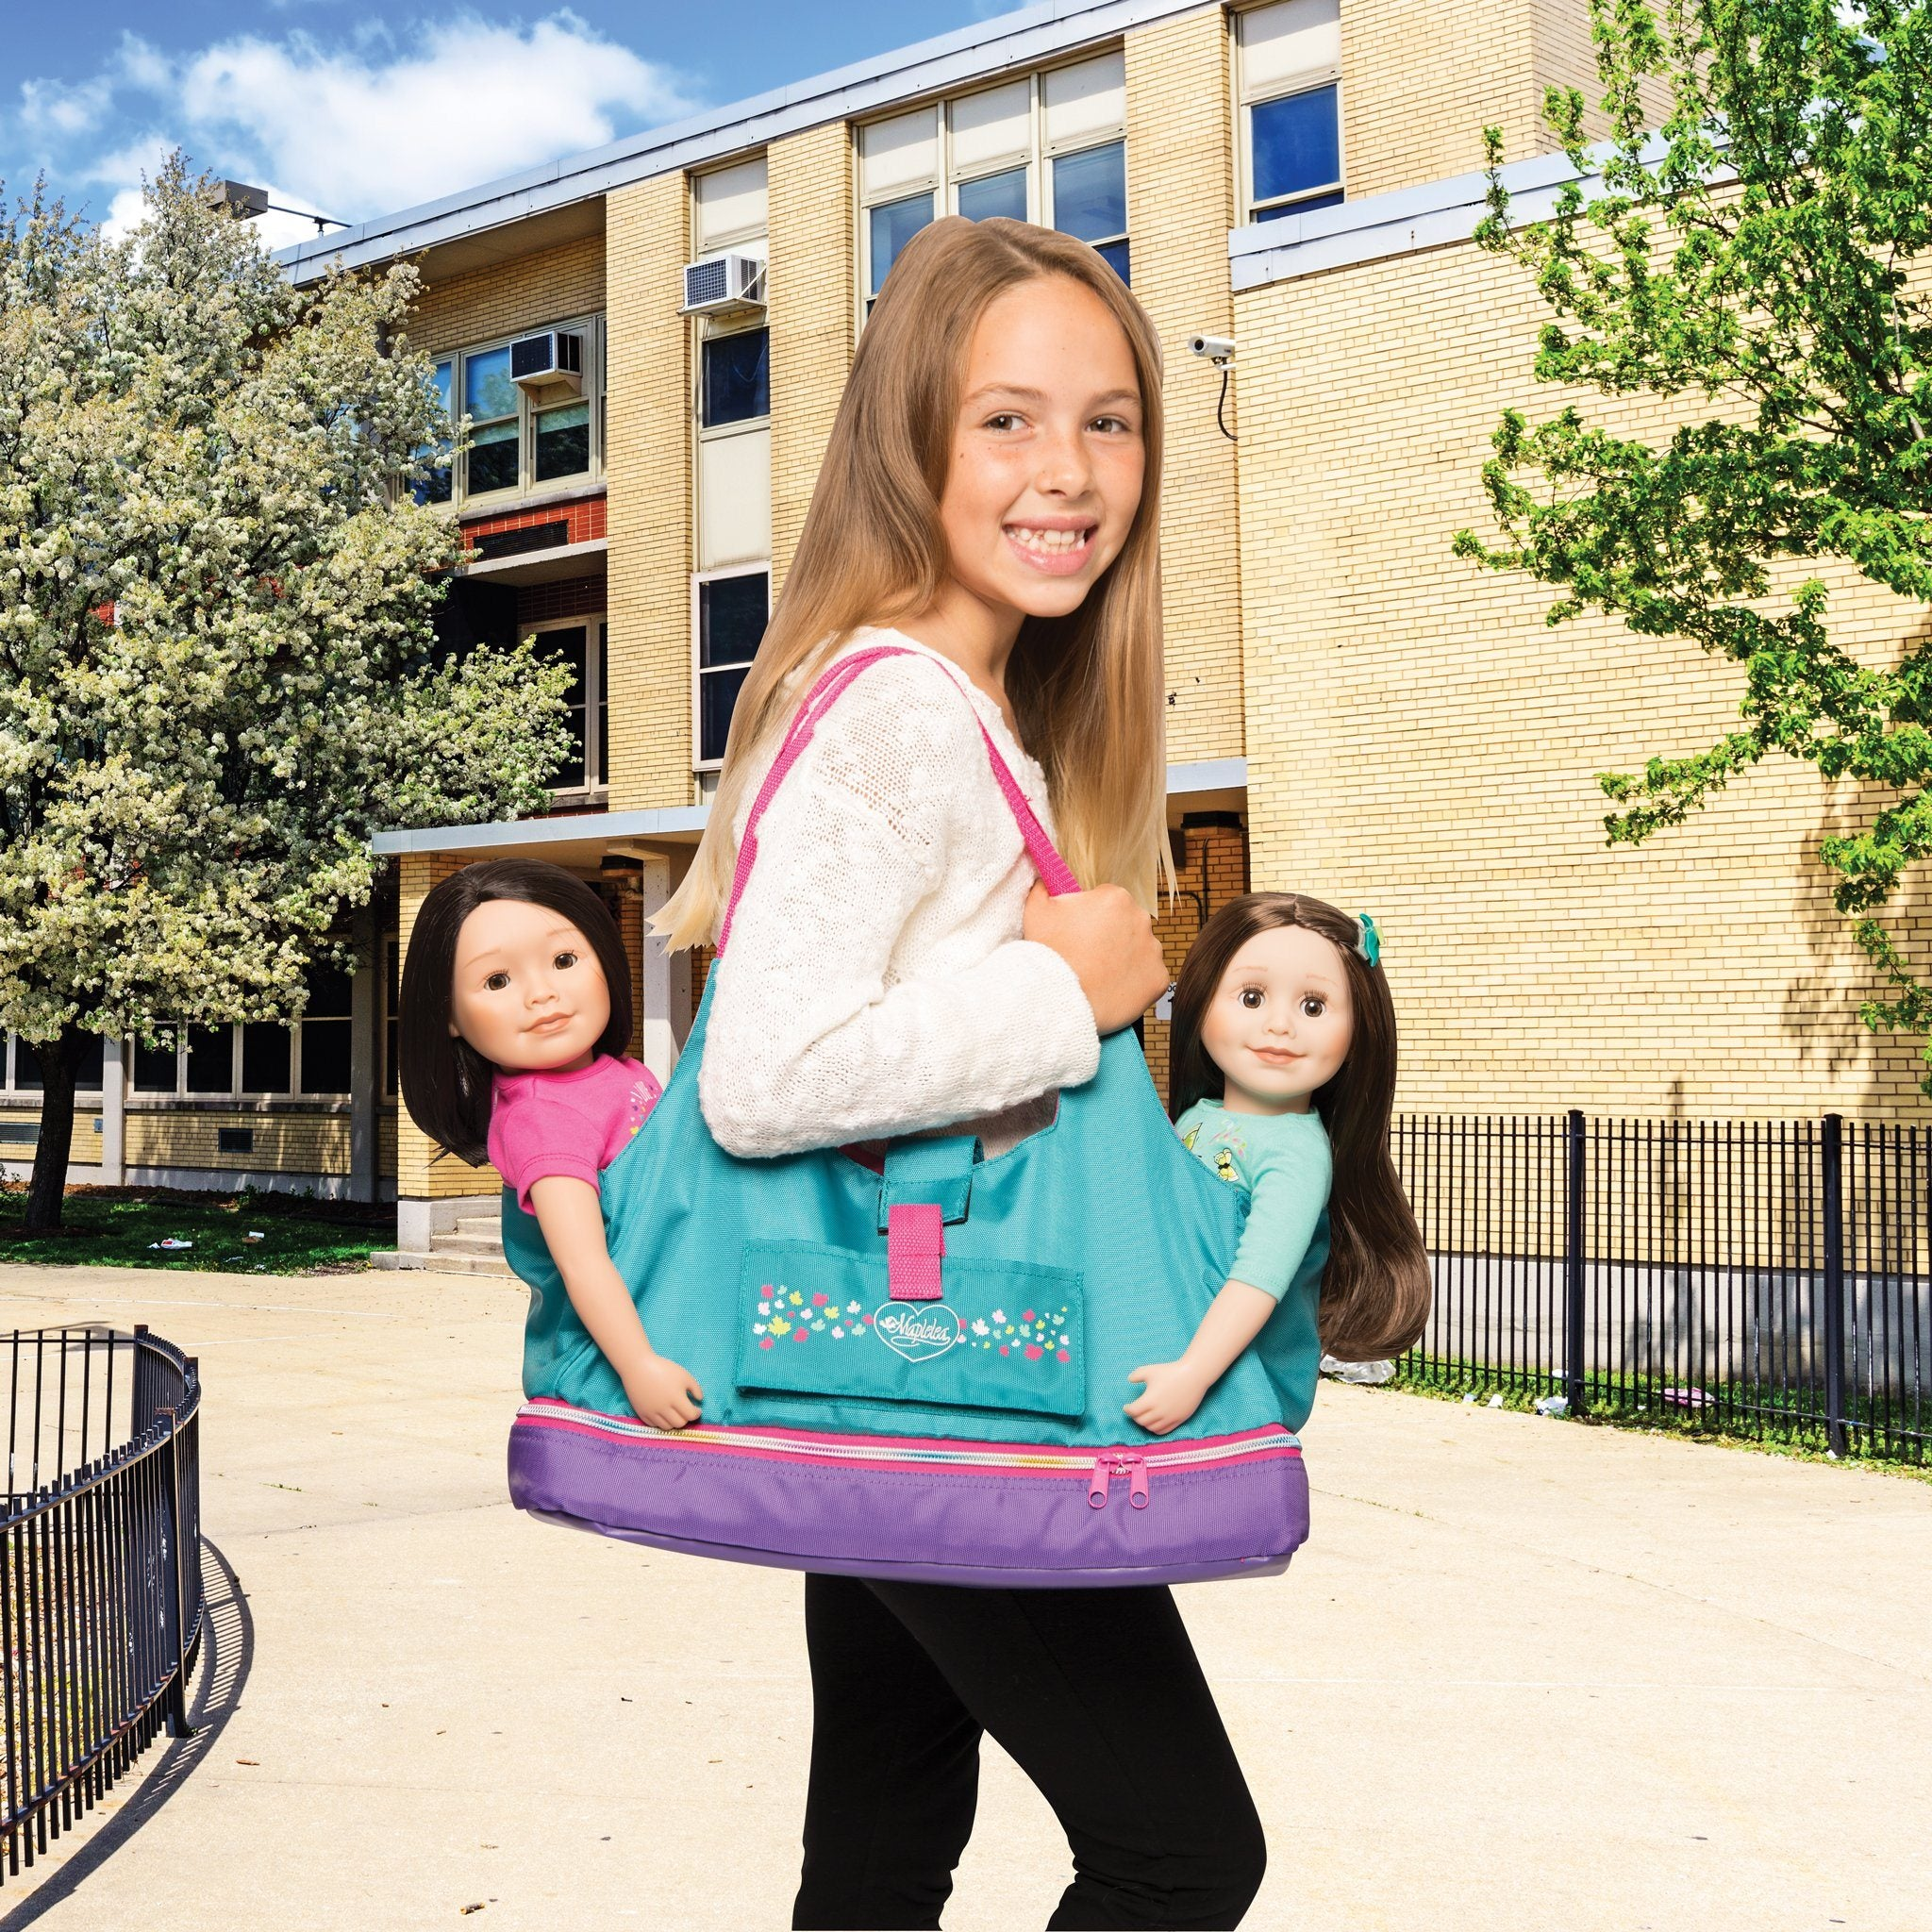 Girl with Maplelea Doll Tote in teal, pink and purple carries two dolls.